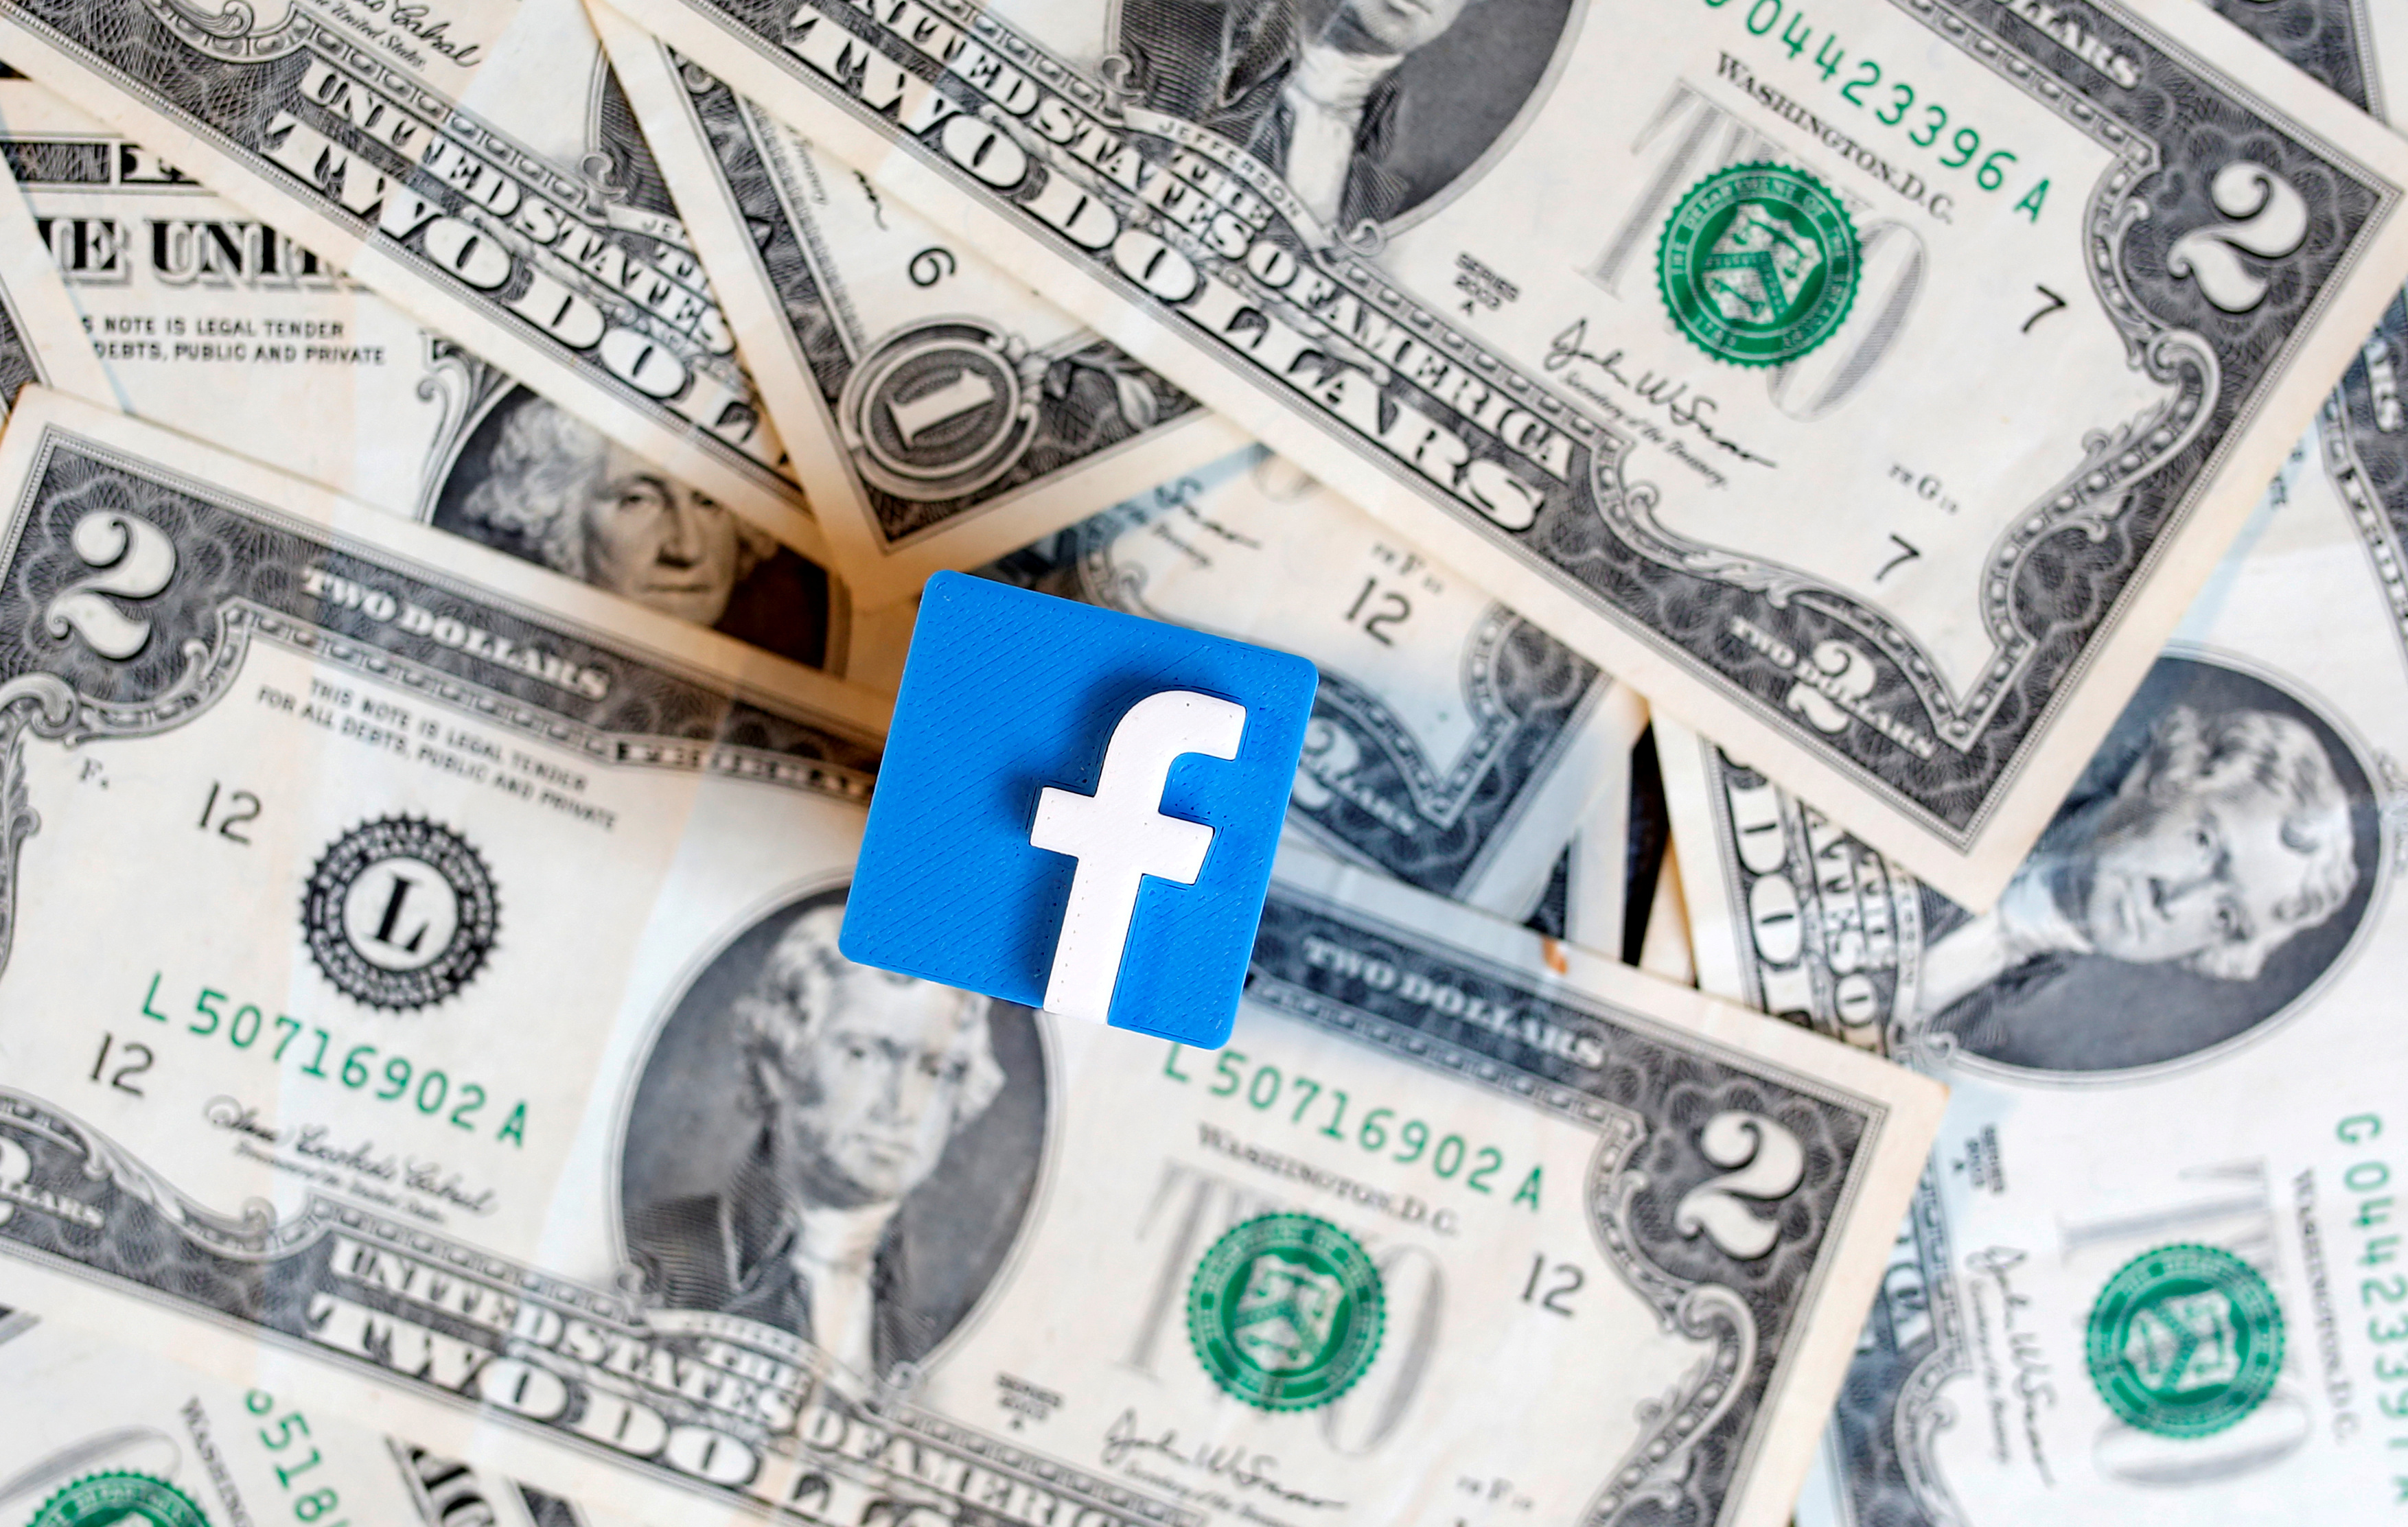 A 3-D printed Facebook logo is seen on U.S. dollar banknotes in this illustration picture, June 18, 2019. REUTERS/Dado Ruvic/Illustration/File Photo/File Photo